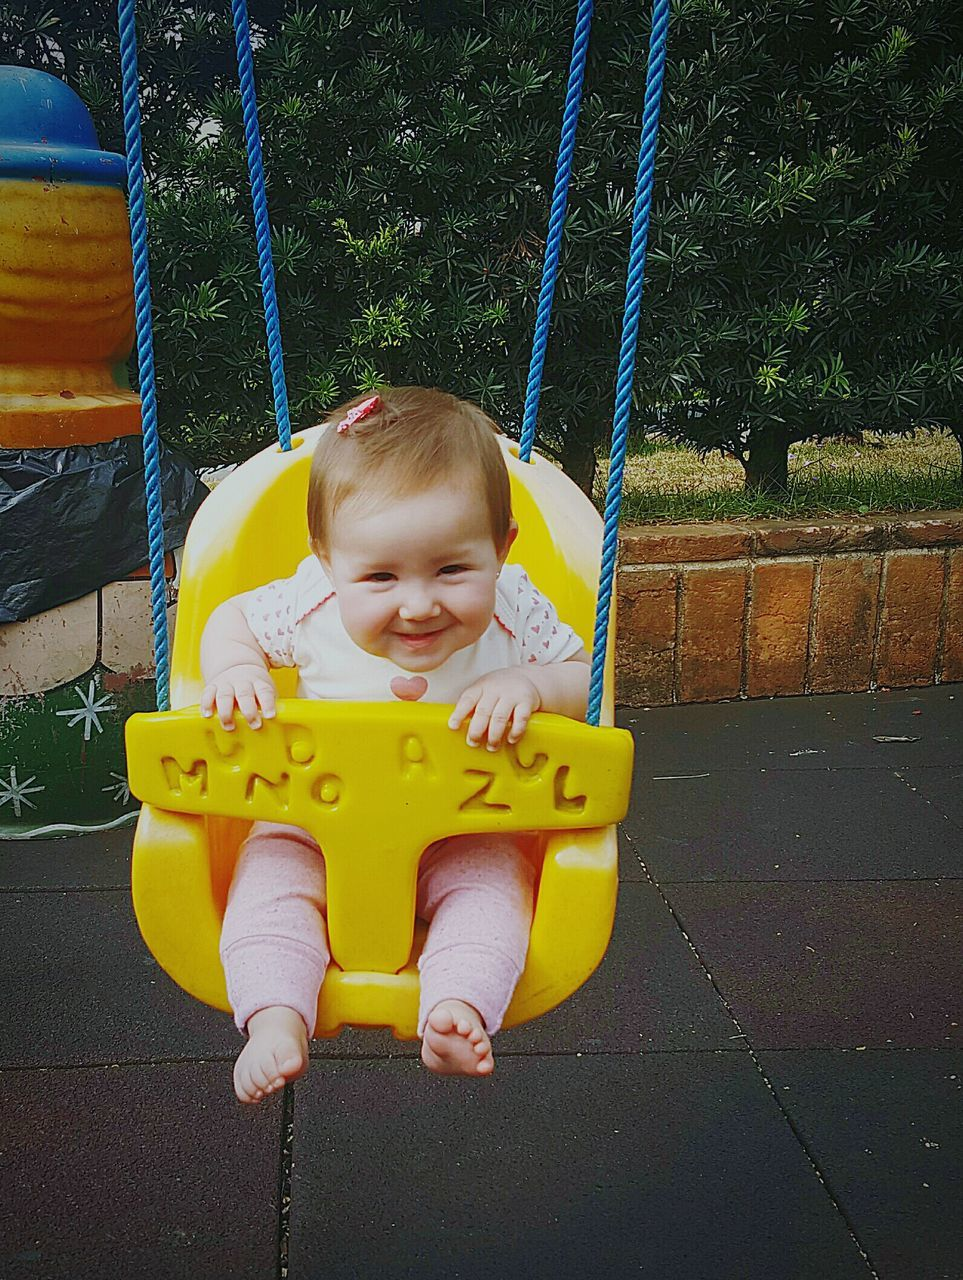 childhood, playground, swing, outdoor play equipment, sitting, one person, leisure activity, real people, happiness, playing, smiling, full length, fun, park - man made space, enjoyment, day, lifestyles, cheerful, outdoors, people